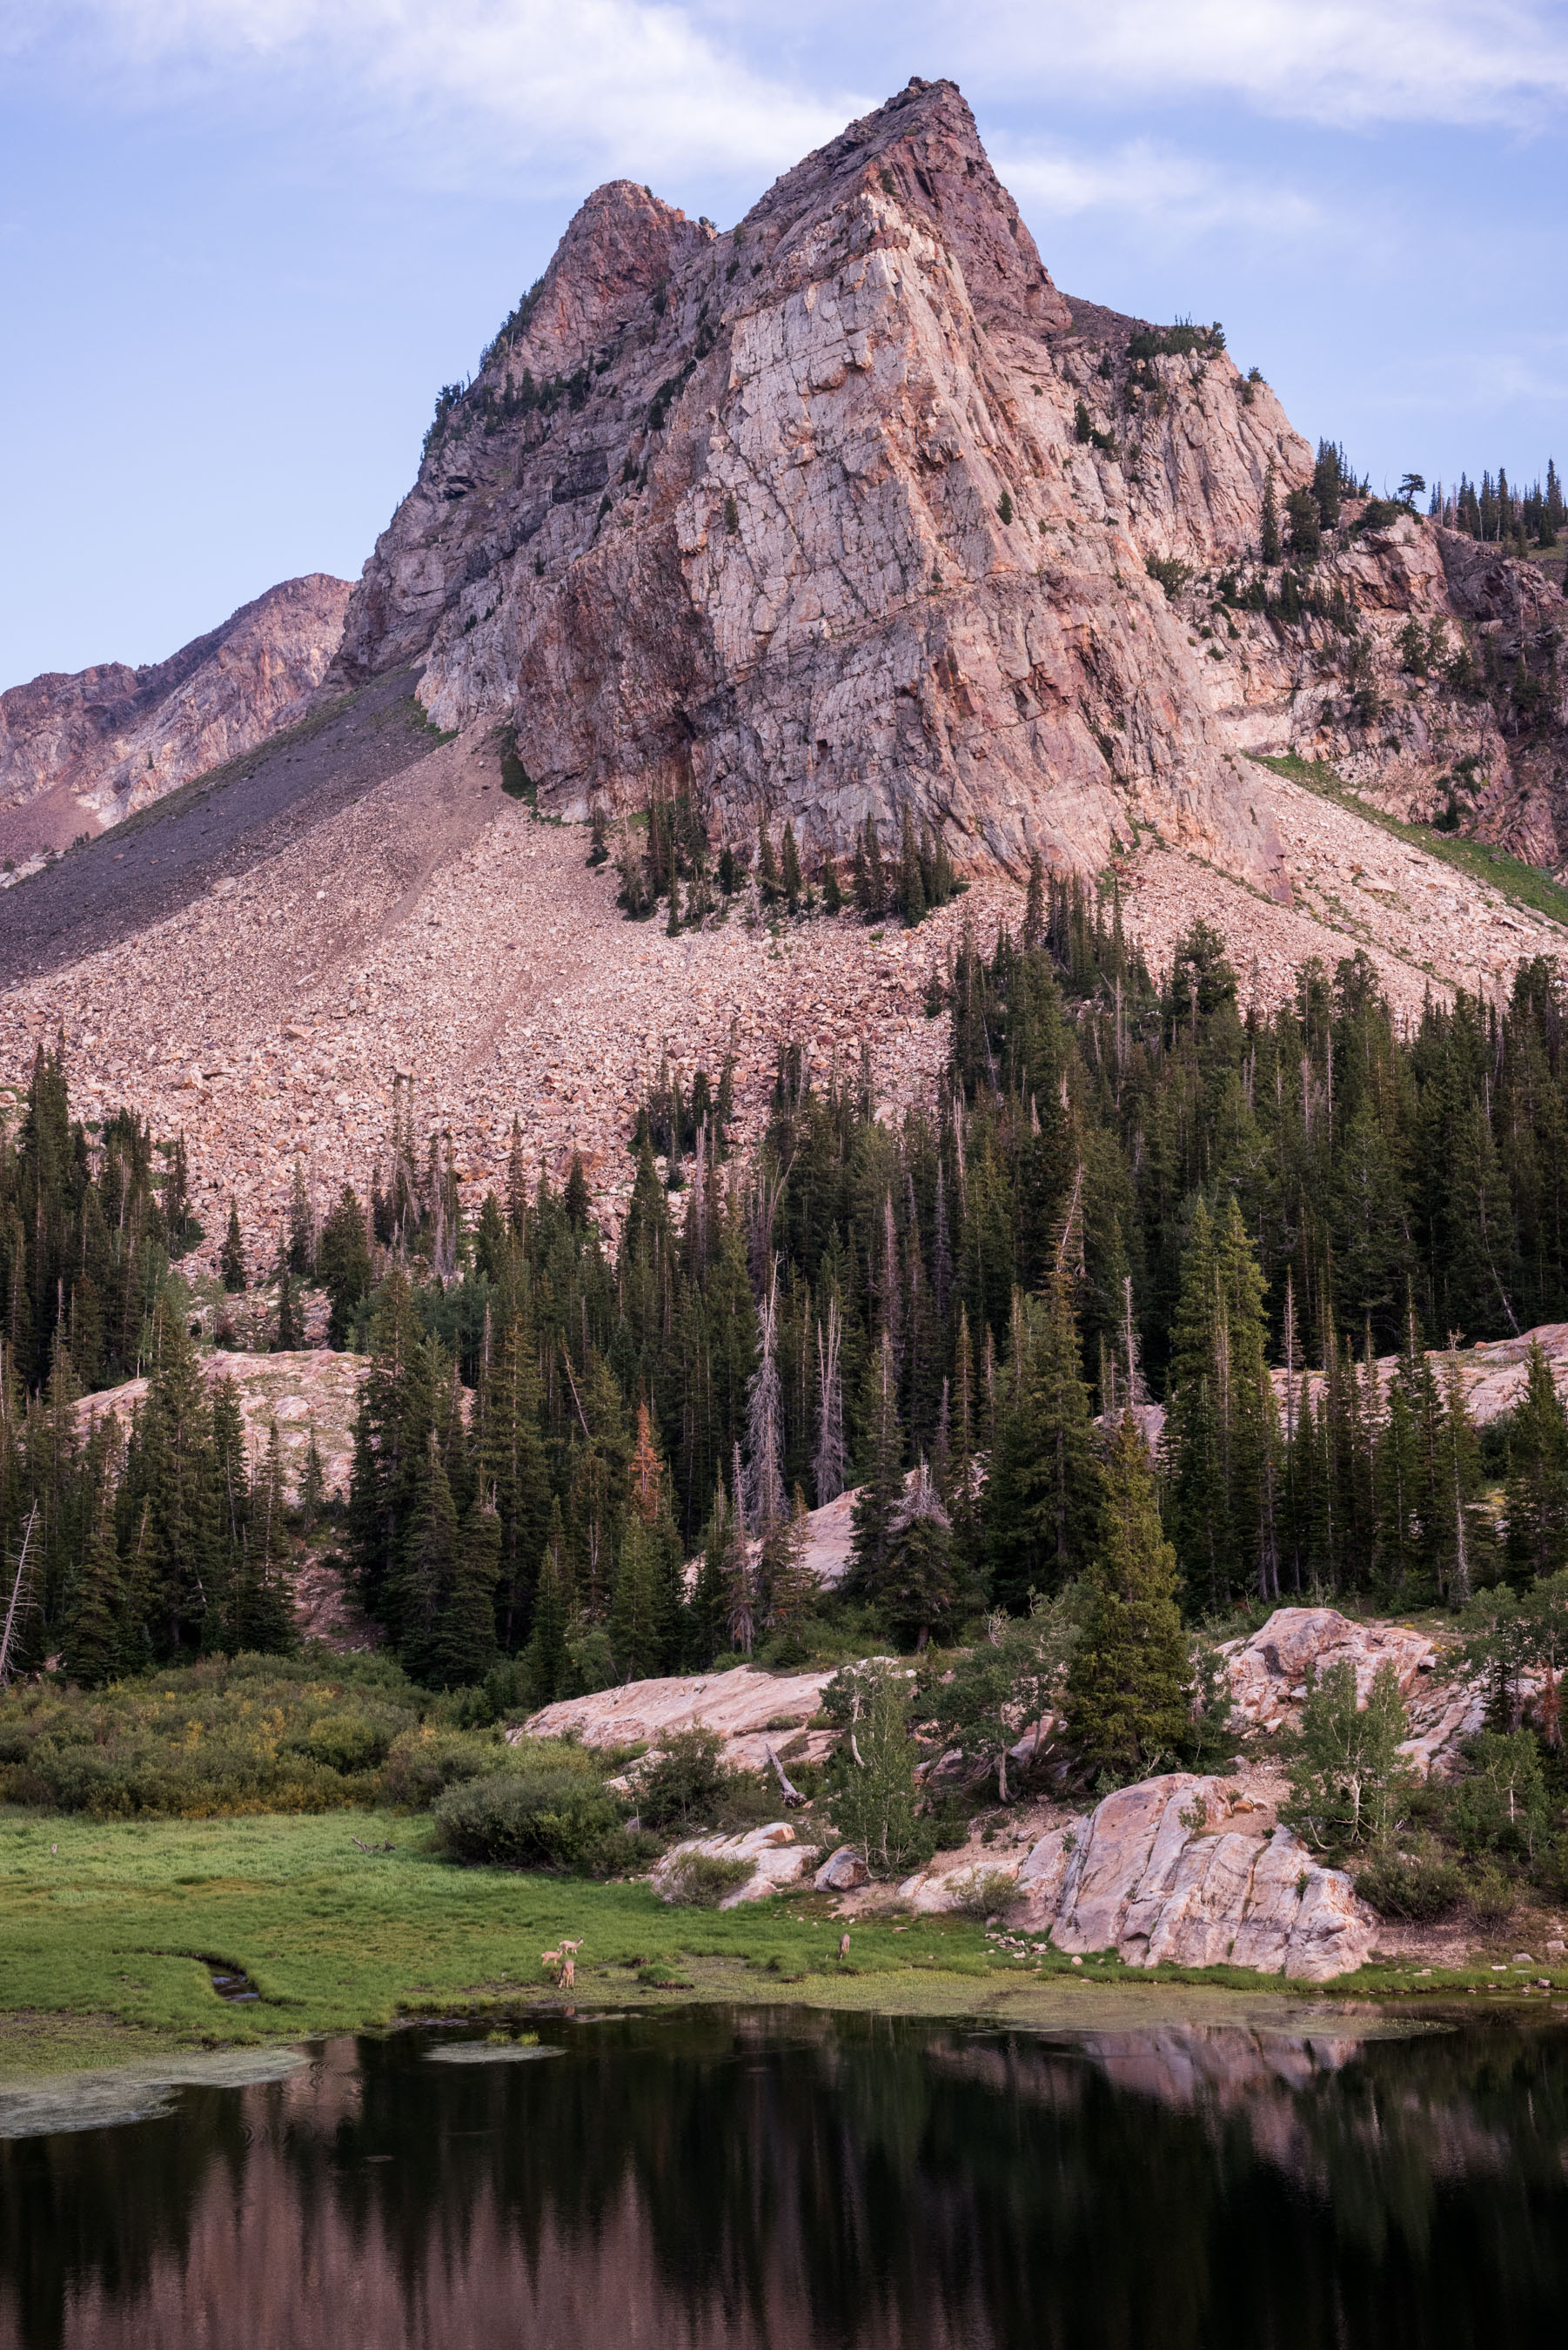 Sundial Peak, Lake Blanche and 4 deer. Wildfires in the area have created a haze that diffuses the light while adding a warm color to this scene. Amazing ice-age glacial activity in this tributary to Big Cottonwood Canyon, Utah. Twin Peaks Wilderness. Wasatch Range.